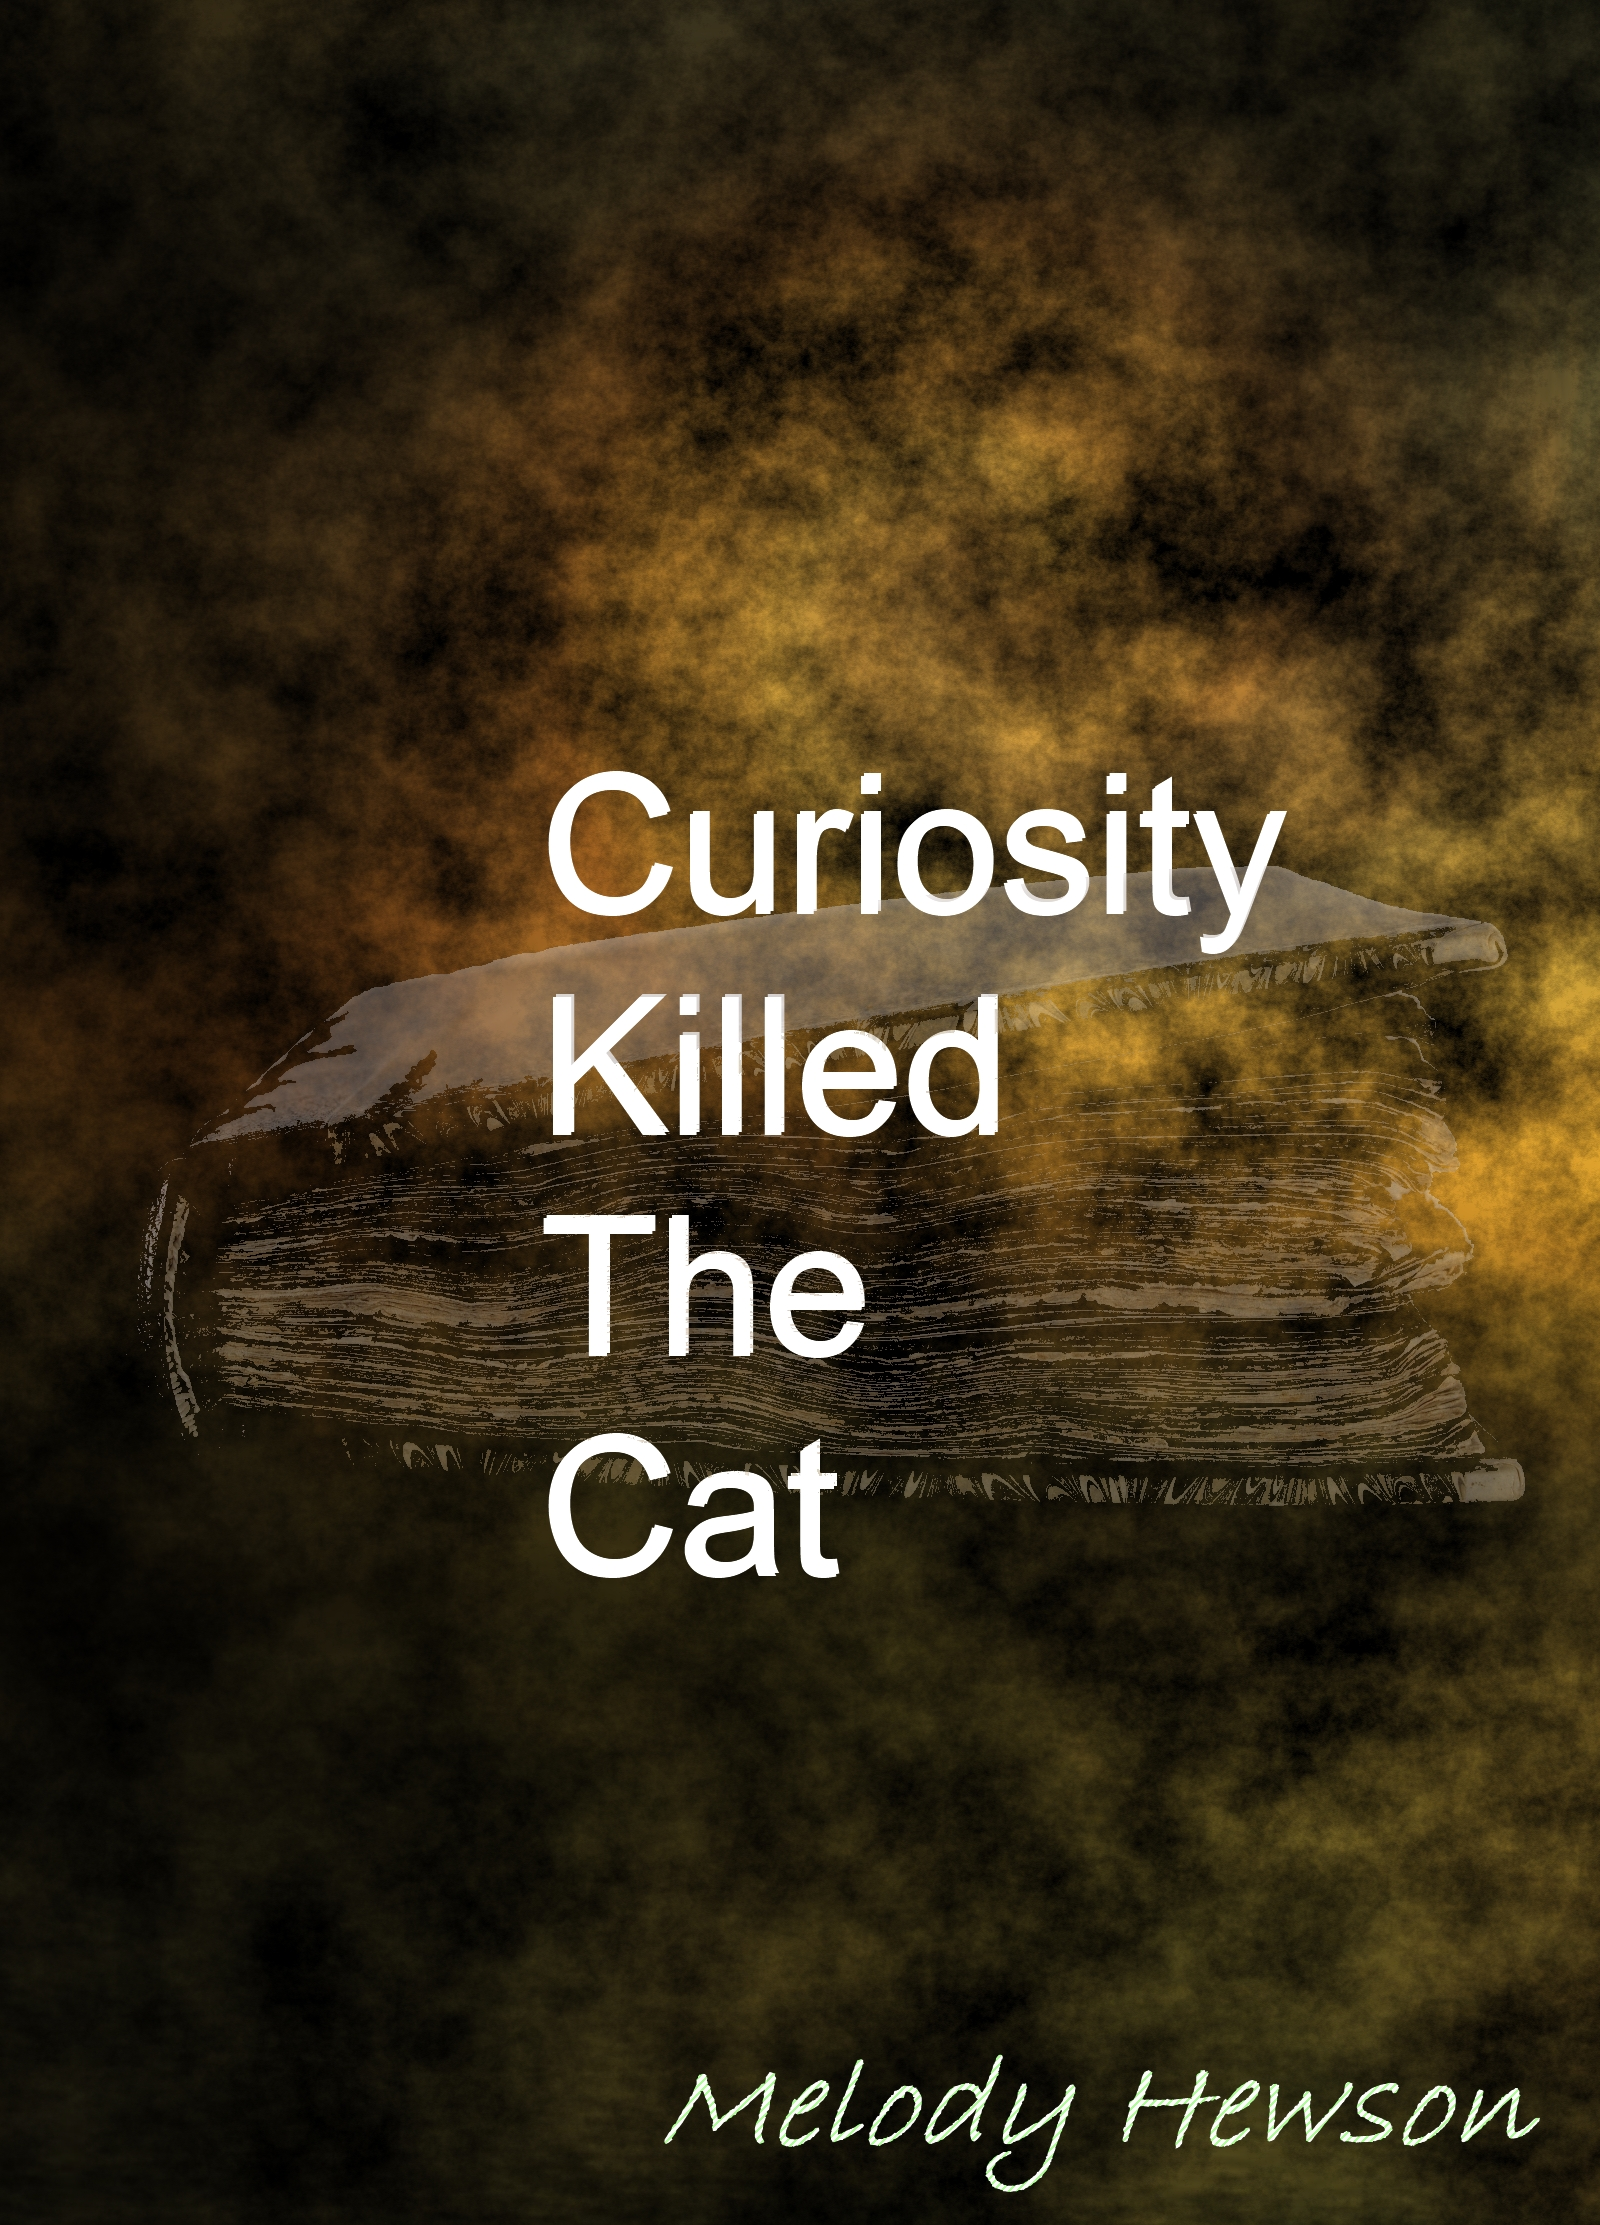 curiosity killed a friendship essay If curiosity killed the cat, what does it do to humans with humans, being curious leads us to question questioning leads to seeking answers which, in turn, leads to expanding knowledge.